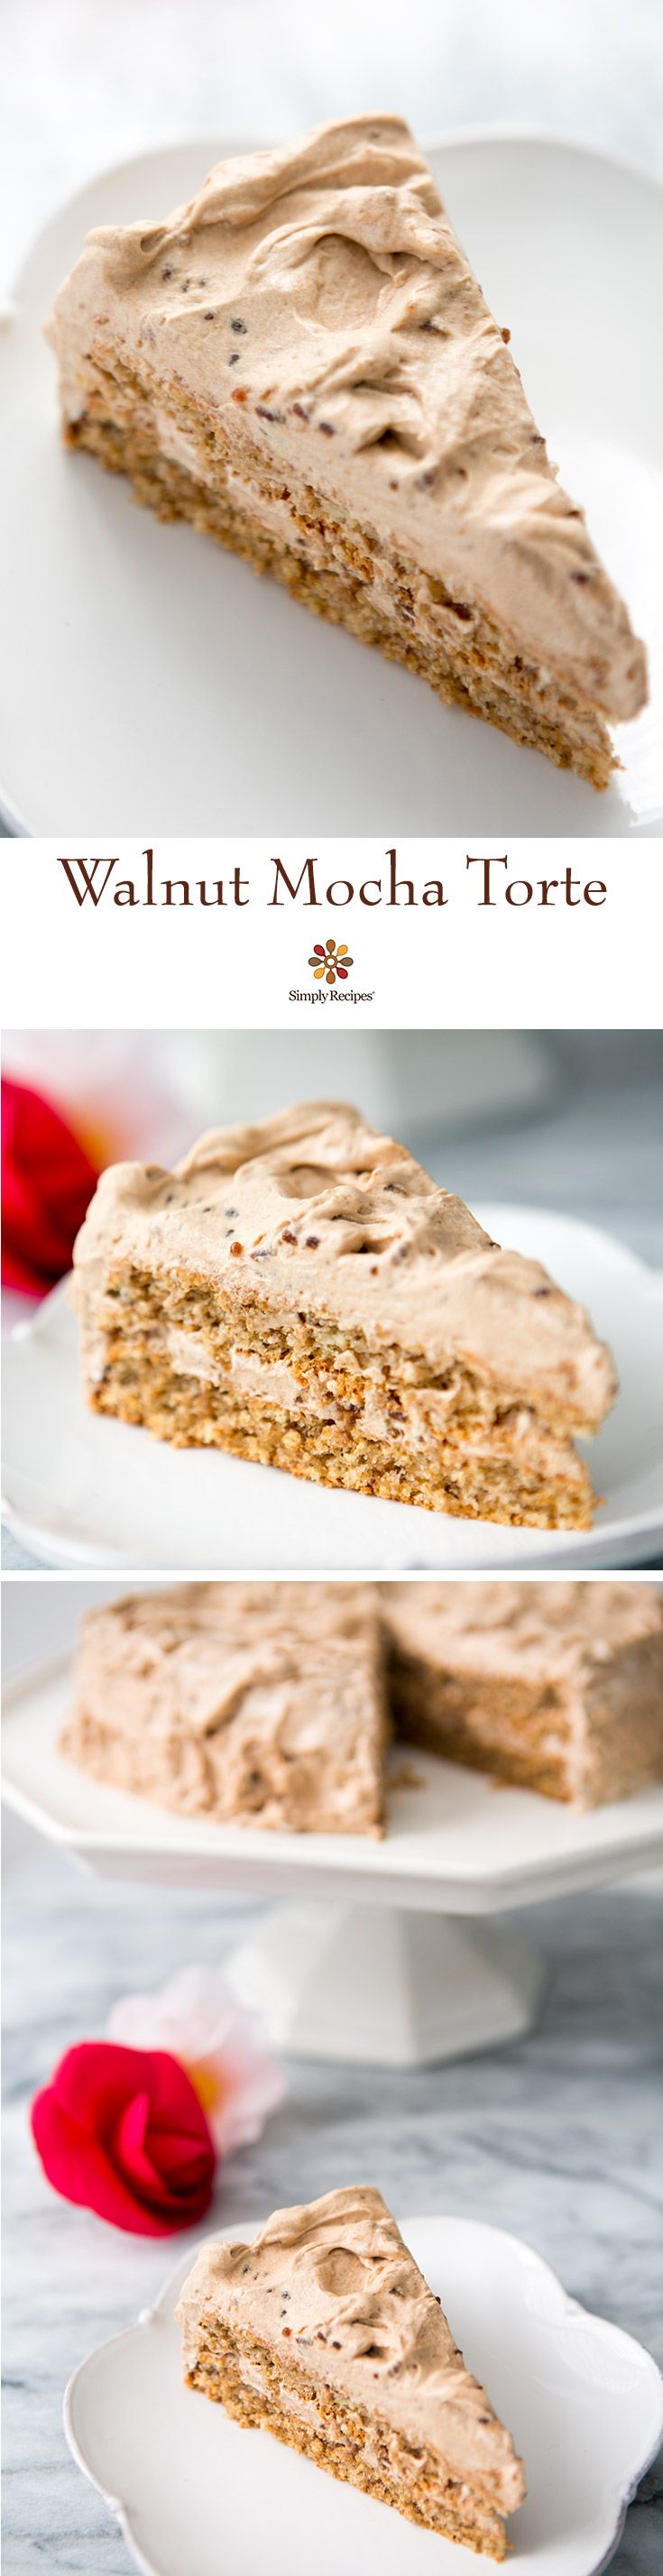 Walnut Mocha Torte ~ German-style torte made with ground walnuts, whipped eggs, and bread crumbs, and a mocha whipped cream frosting. ~ SimplyRecipes.com